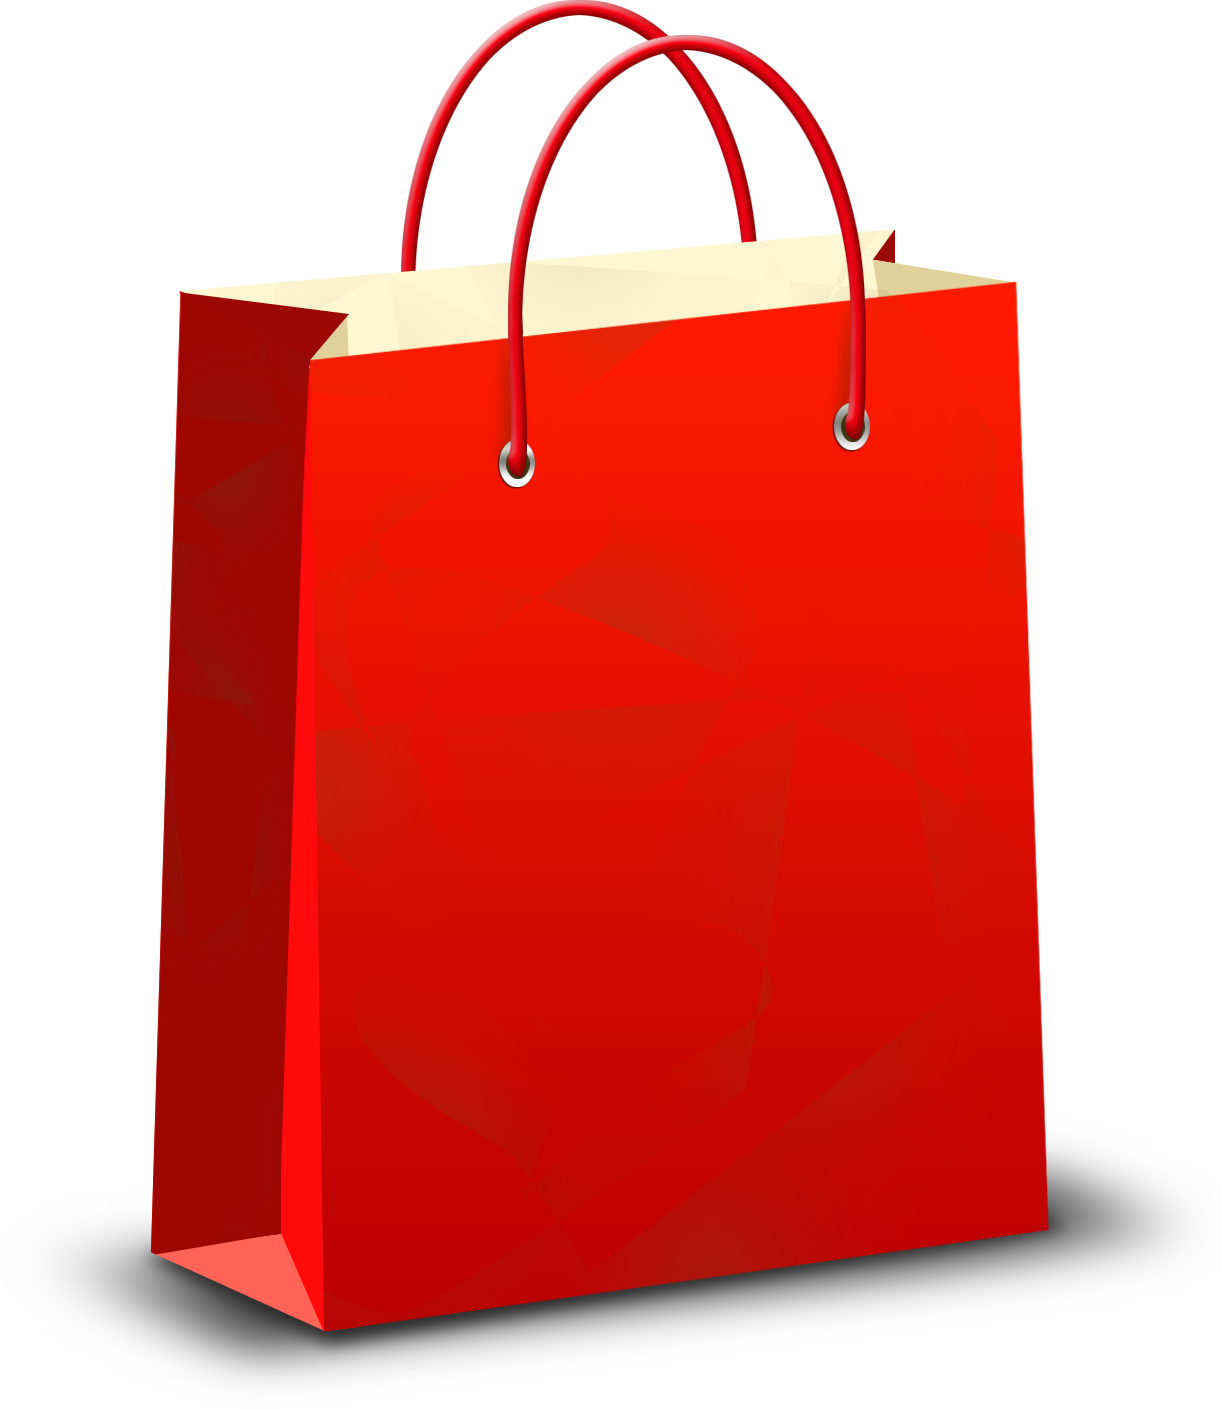 Red Bag Png image #33948